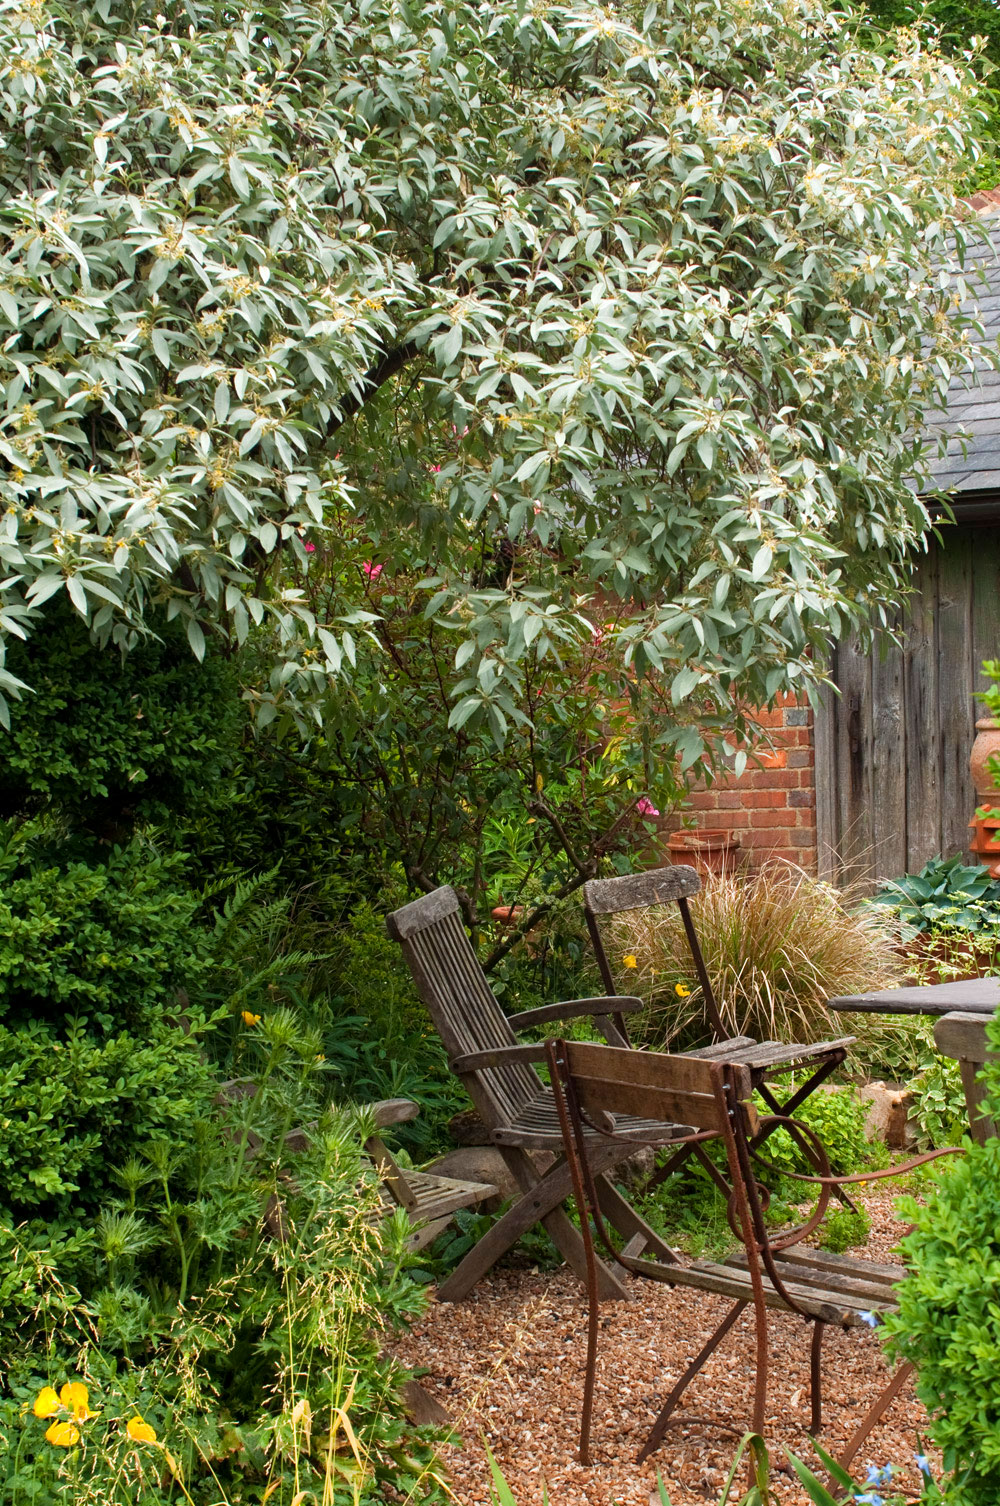 Garden Design, Topiary & Dead Dogs - The Planthunter